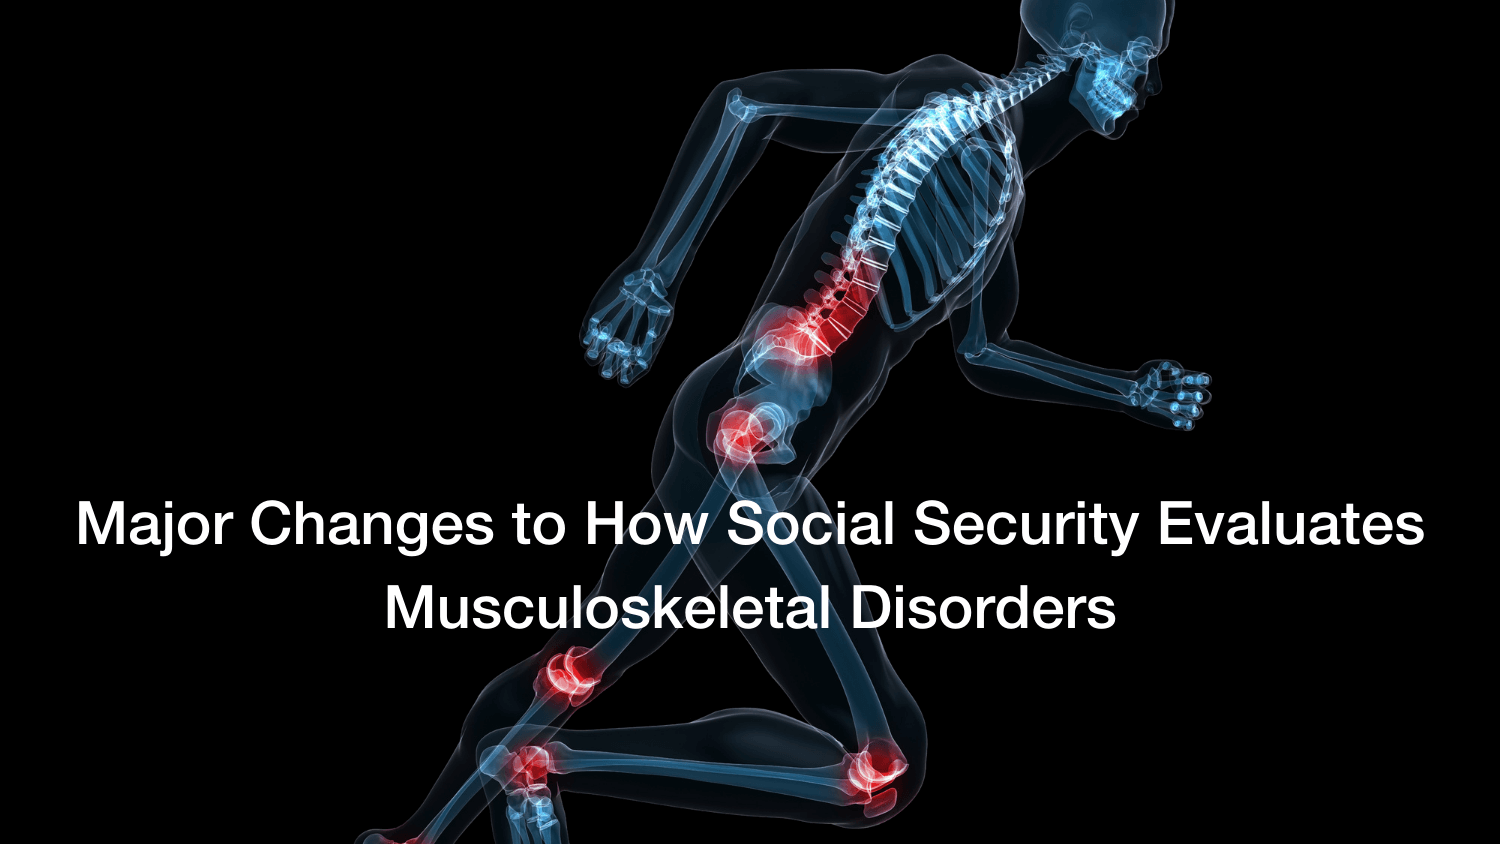 Major Changes to How Social Security Evaluates Musculoskeletal Disorders